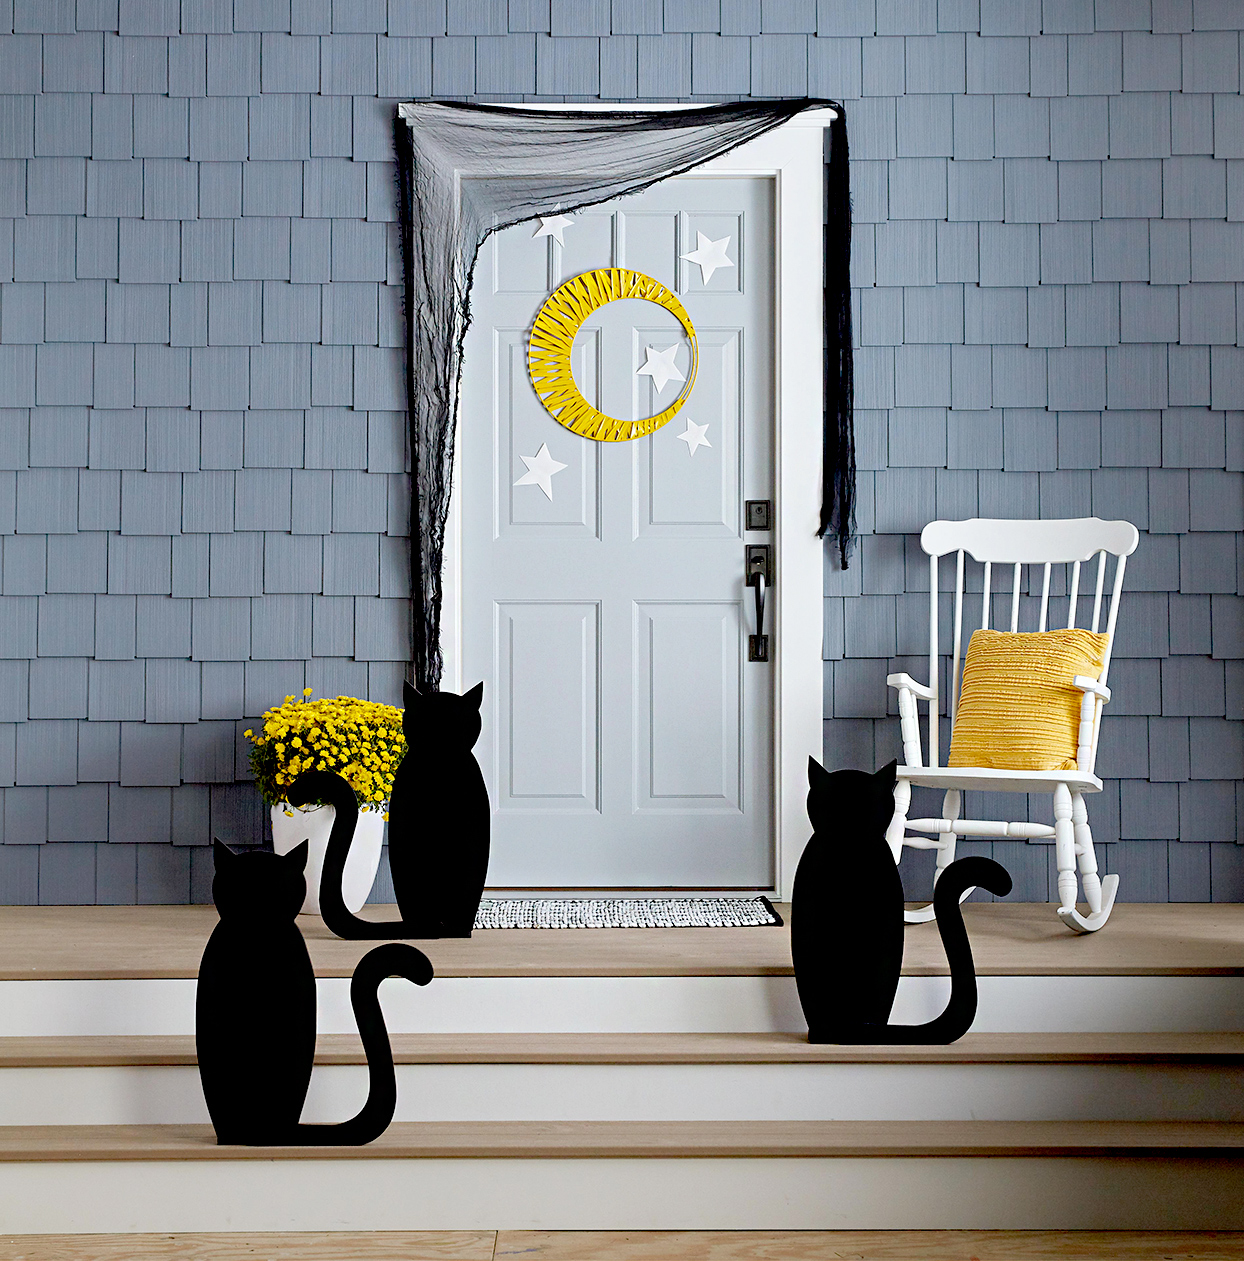 Doorway with Halloween décor, cats, moon, stars